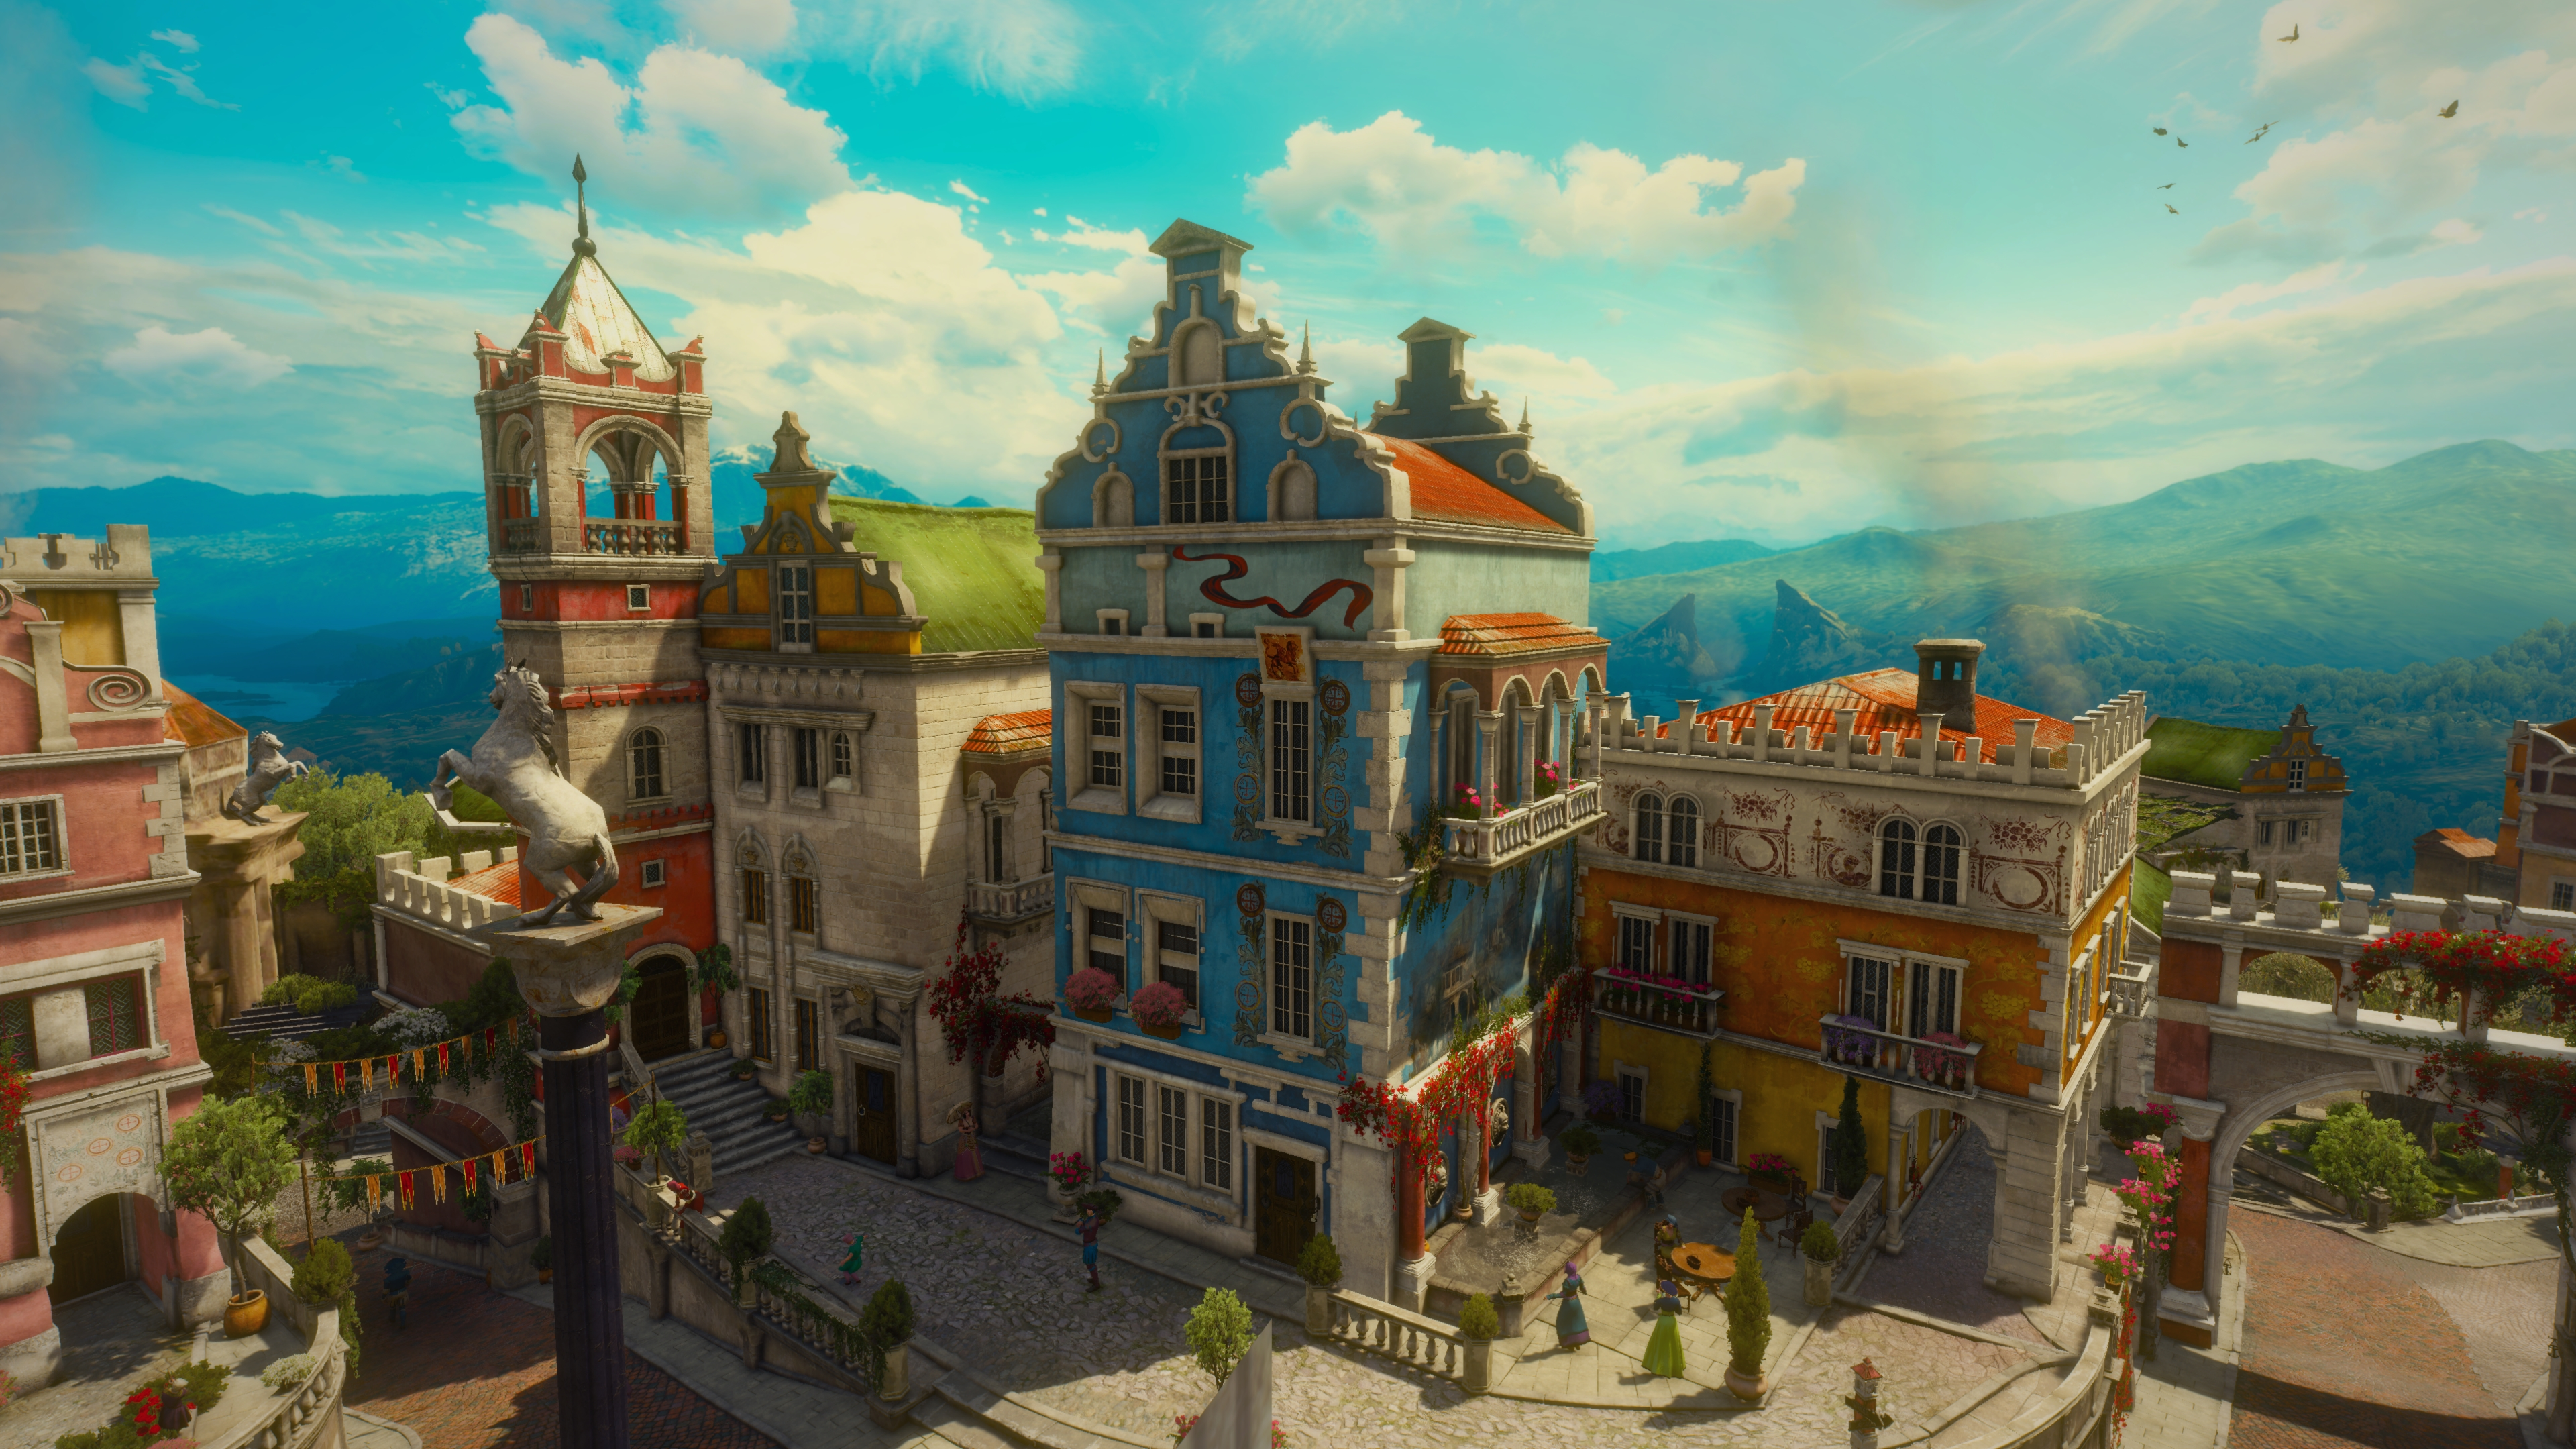 Боклер - Witcher 3: Wild Hunt, the Bokler, The Withcer 3, Wild Hunt